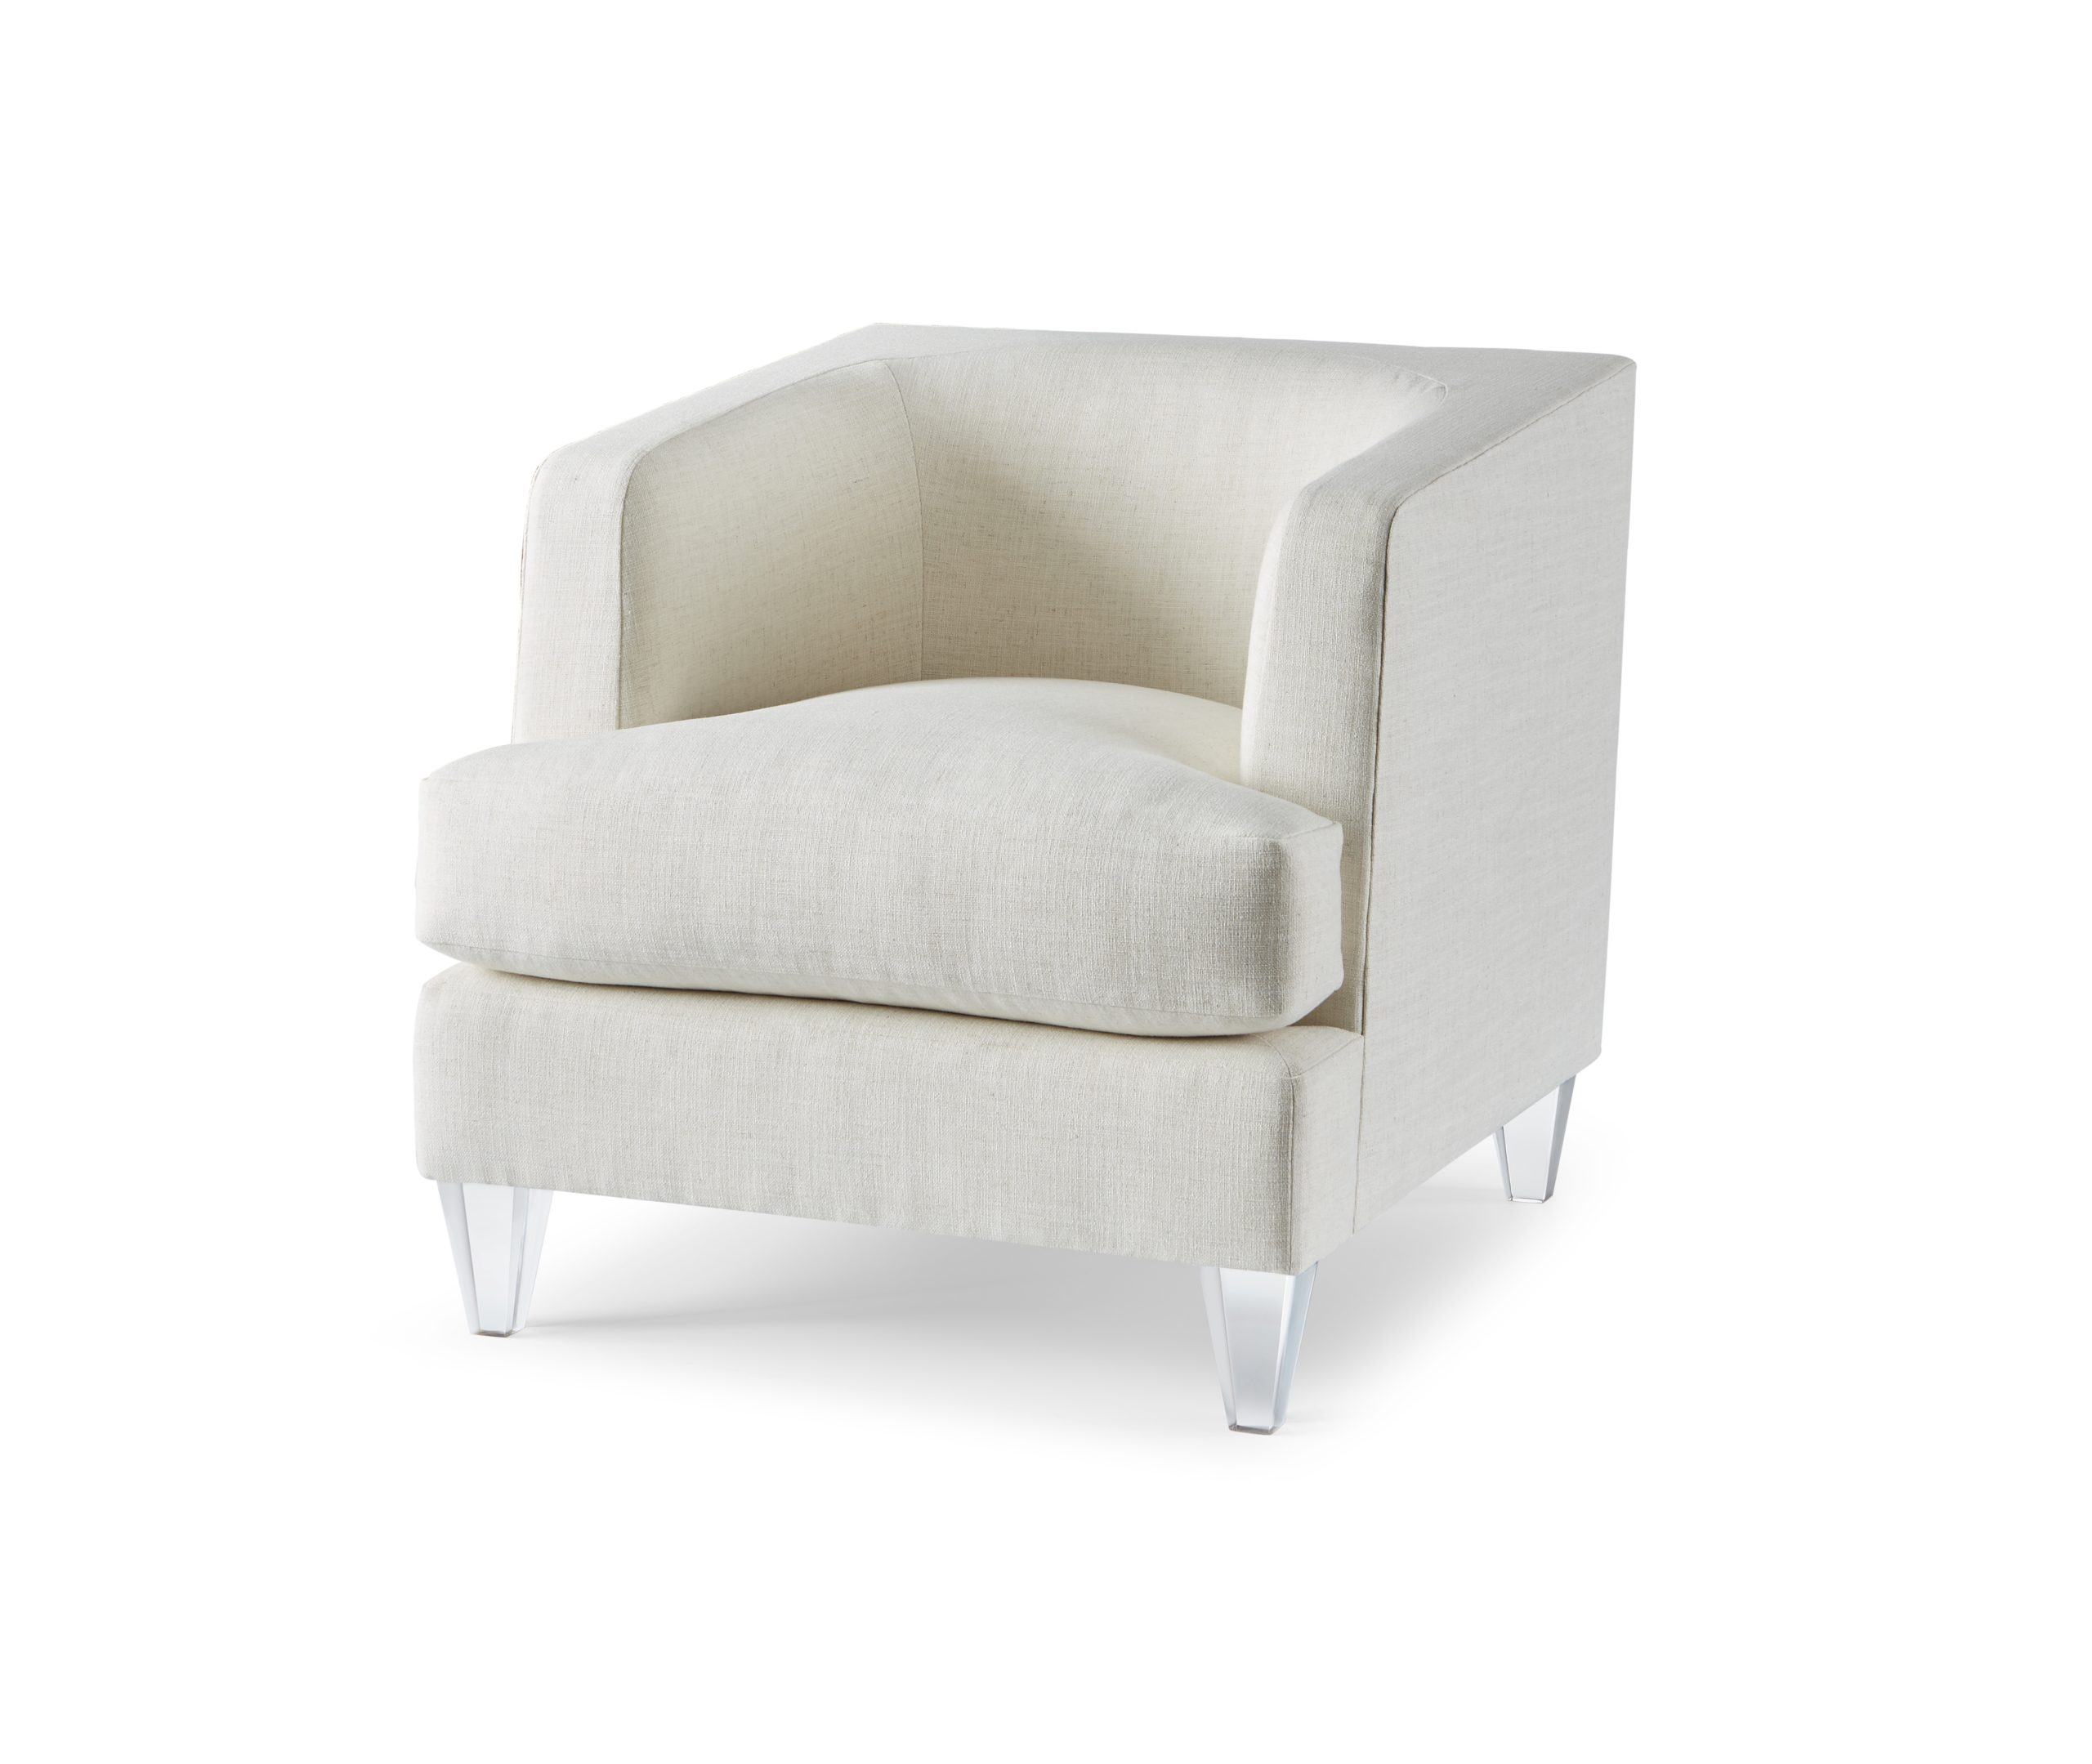 Baker_products_WNWN_taylor_lounge_chair_BAU3102c_FRONT_3QRT-scaled-2